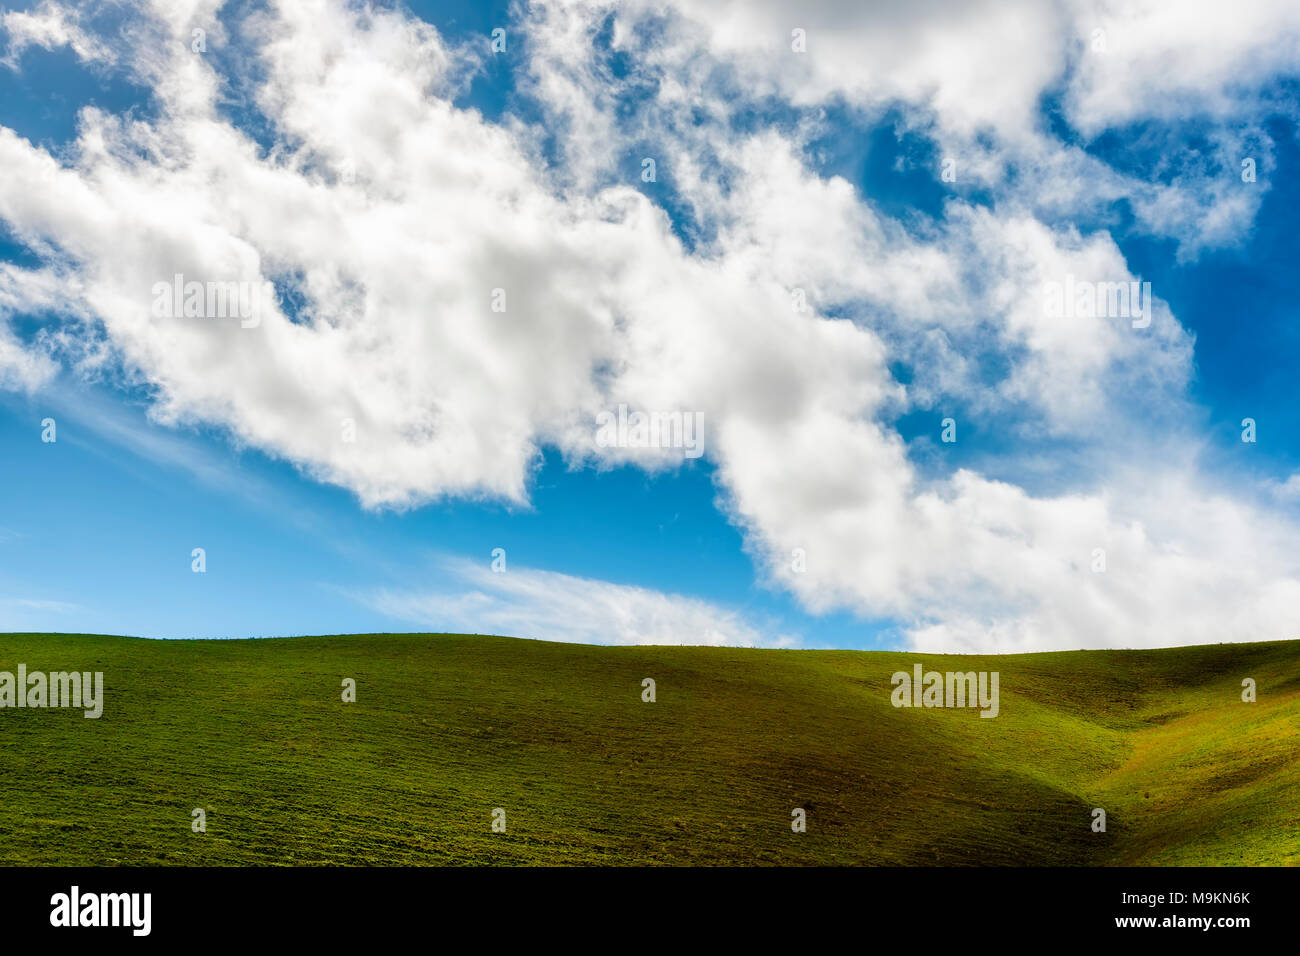 Minimalist landscape of the high desert hillside under cloudy skies in the Columbia River Gorge - Stock Image